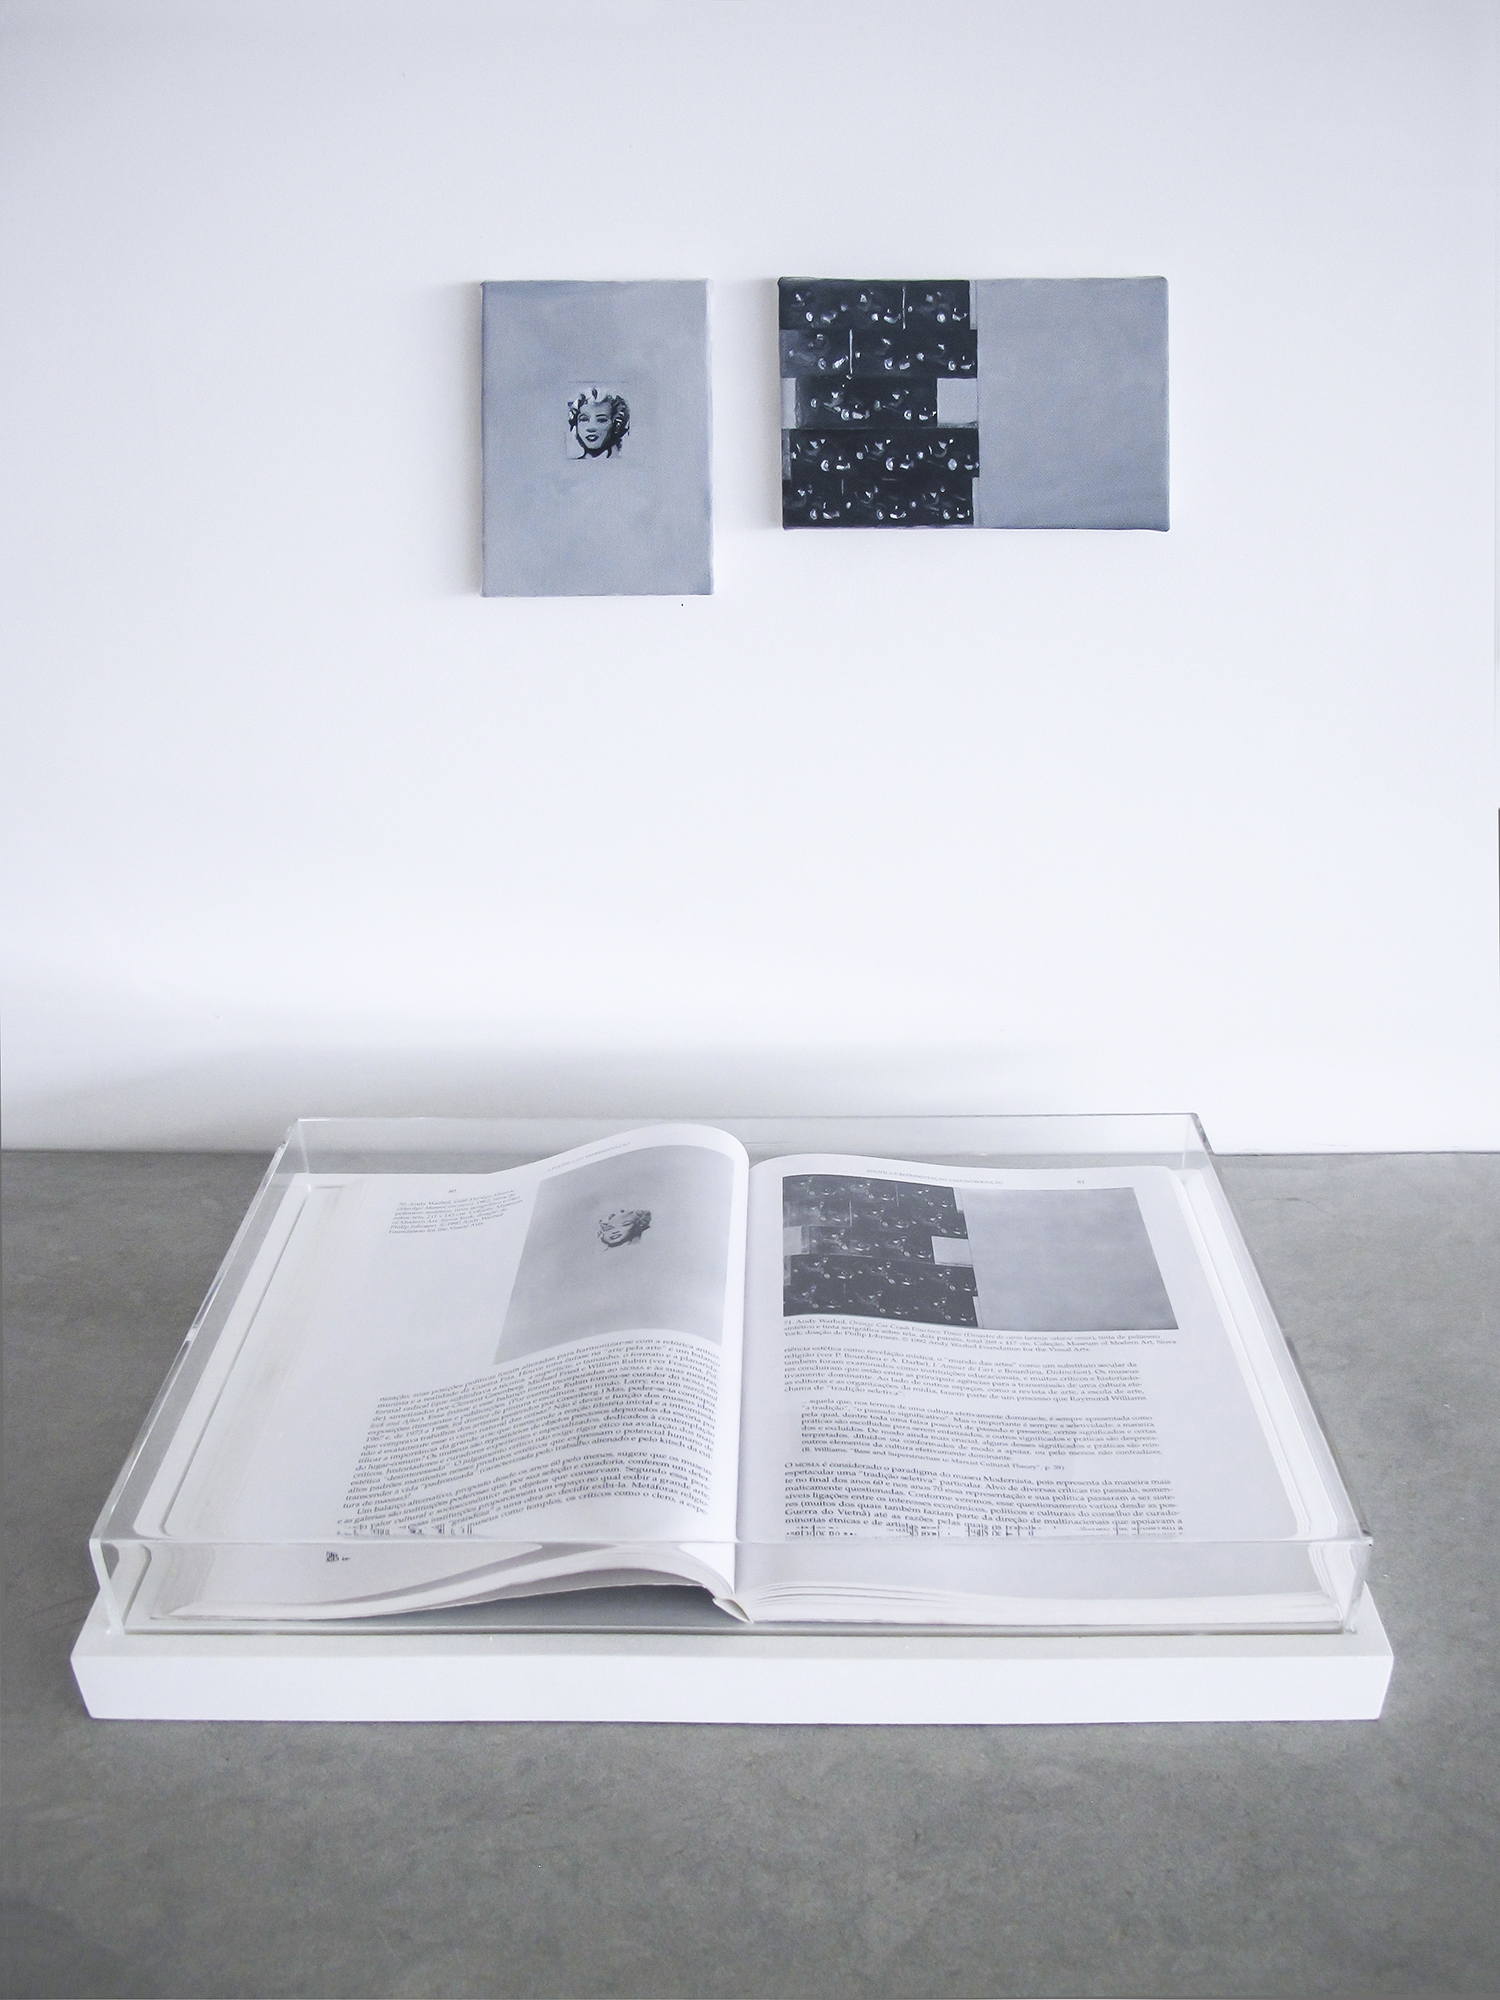 Pages 80 and 81   (  That's How I Was Taught series  )  •  2013 •  Framed book, oil on canvas   •    12.4 x 18.3 in (book)  , 5.1 x 3.5 in, 4 x 6.1 in